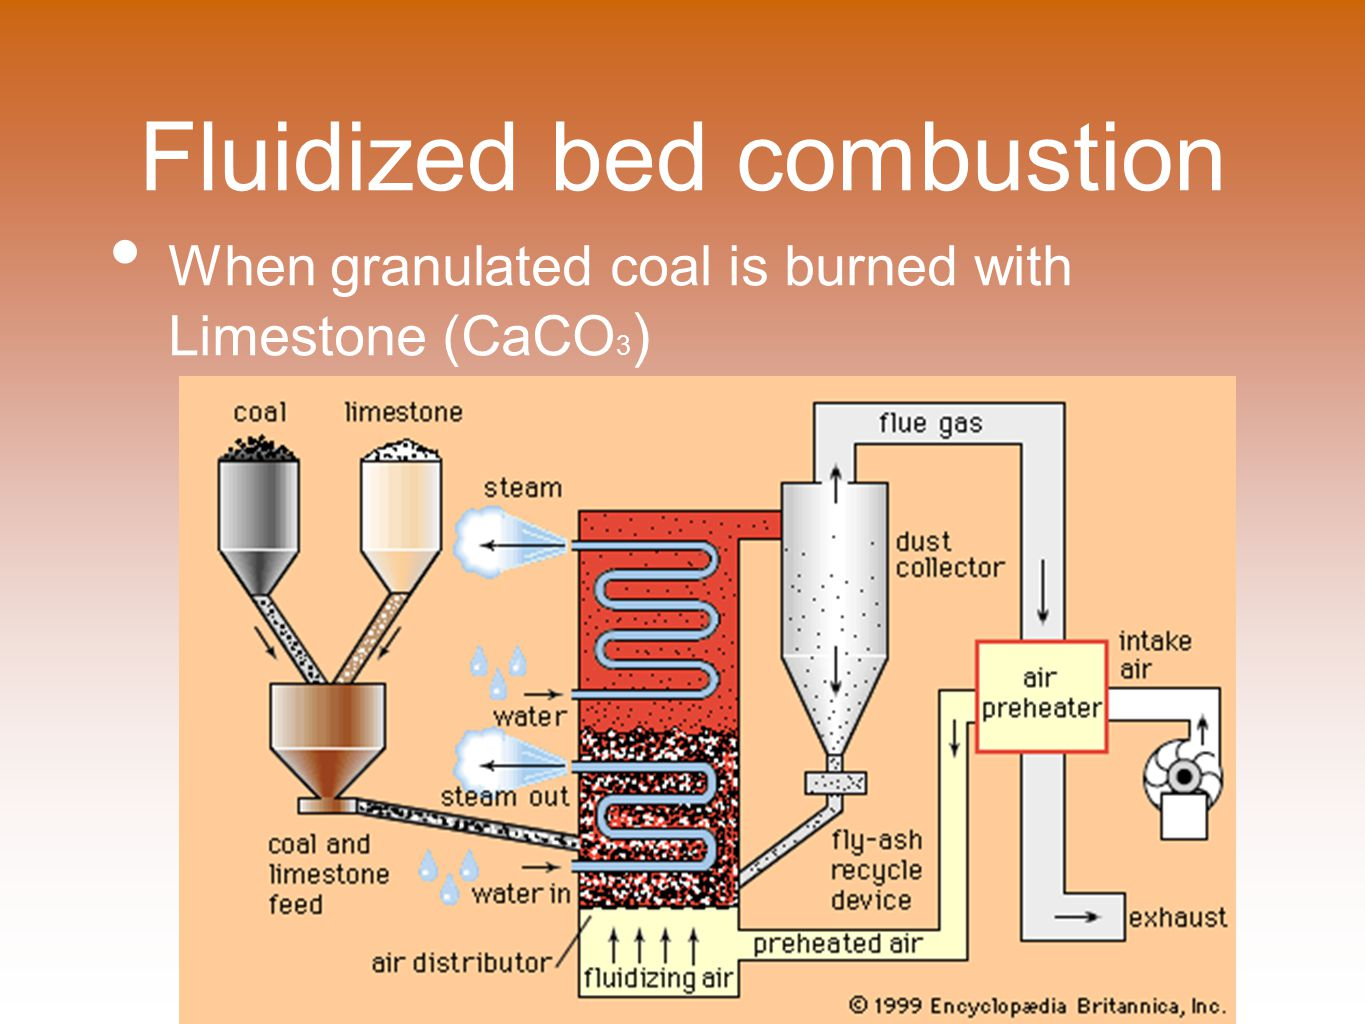 Fluidized bed combustion When granulated coal is burned with Limestone (CaCO 3 )